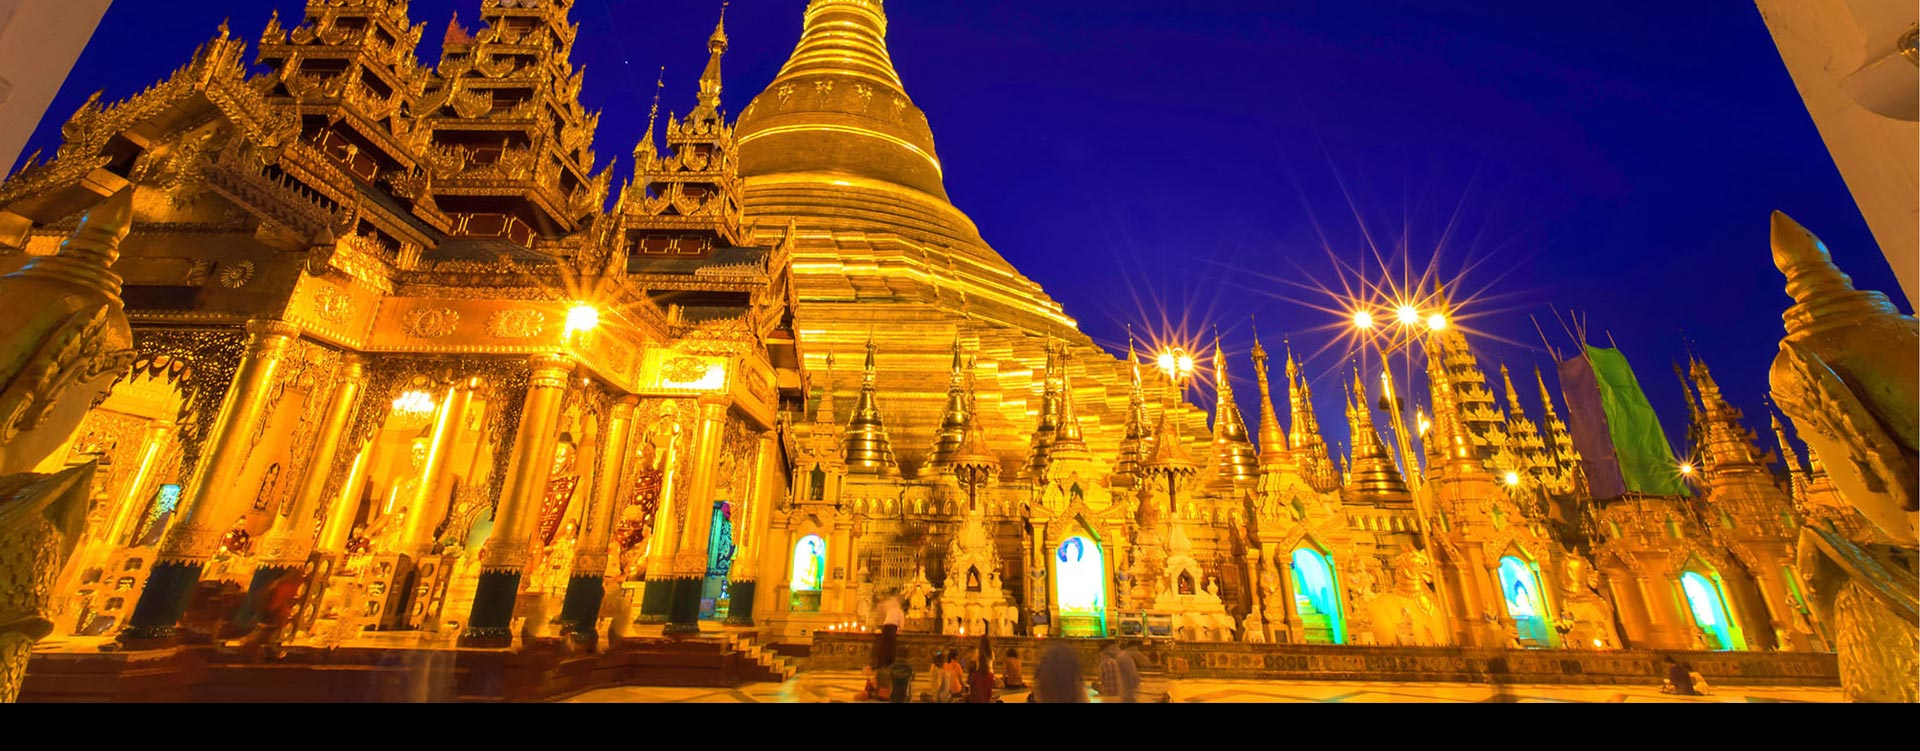 Enjoy authentic Burmese villages with business class flights to Yangon. - IFlyFirstClass